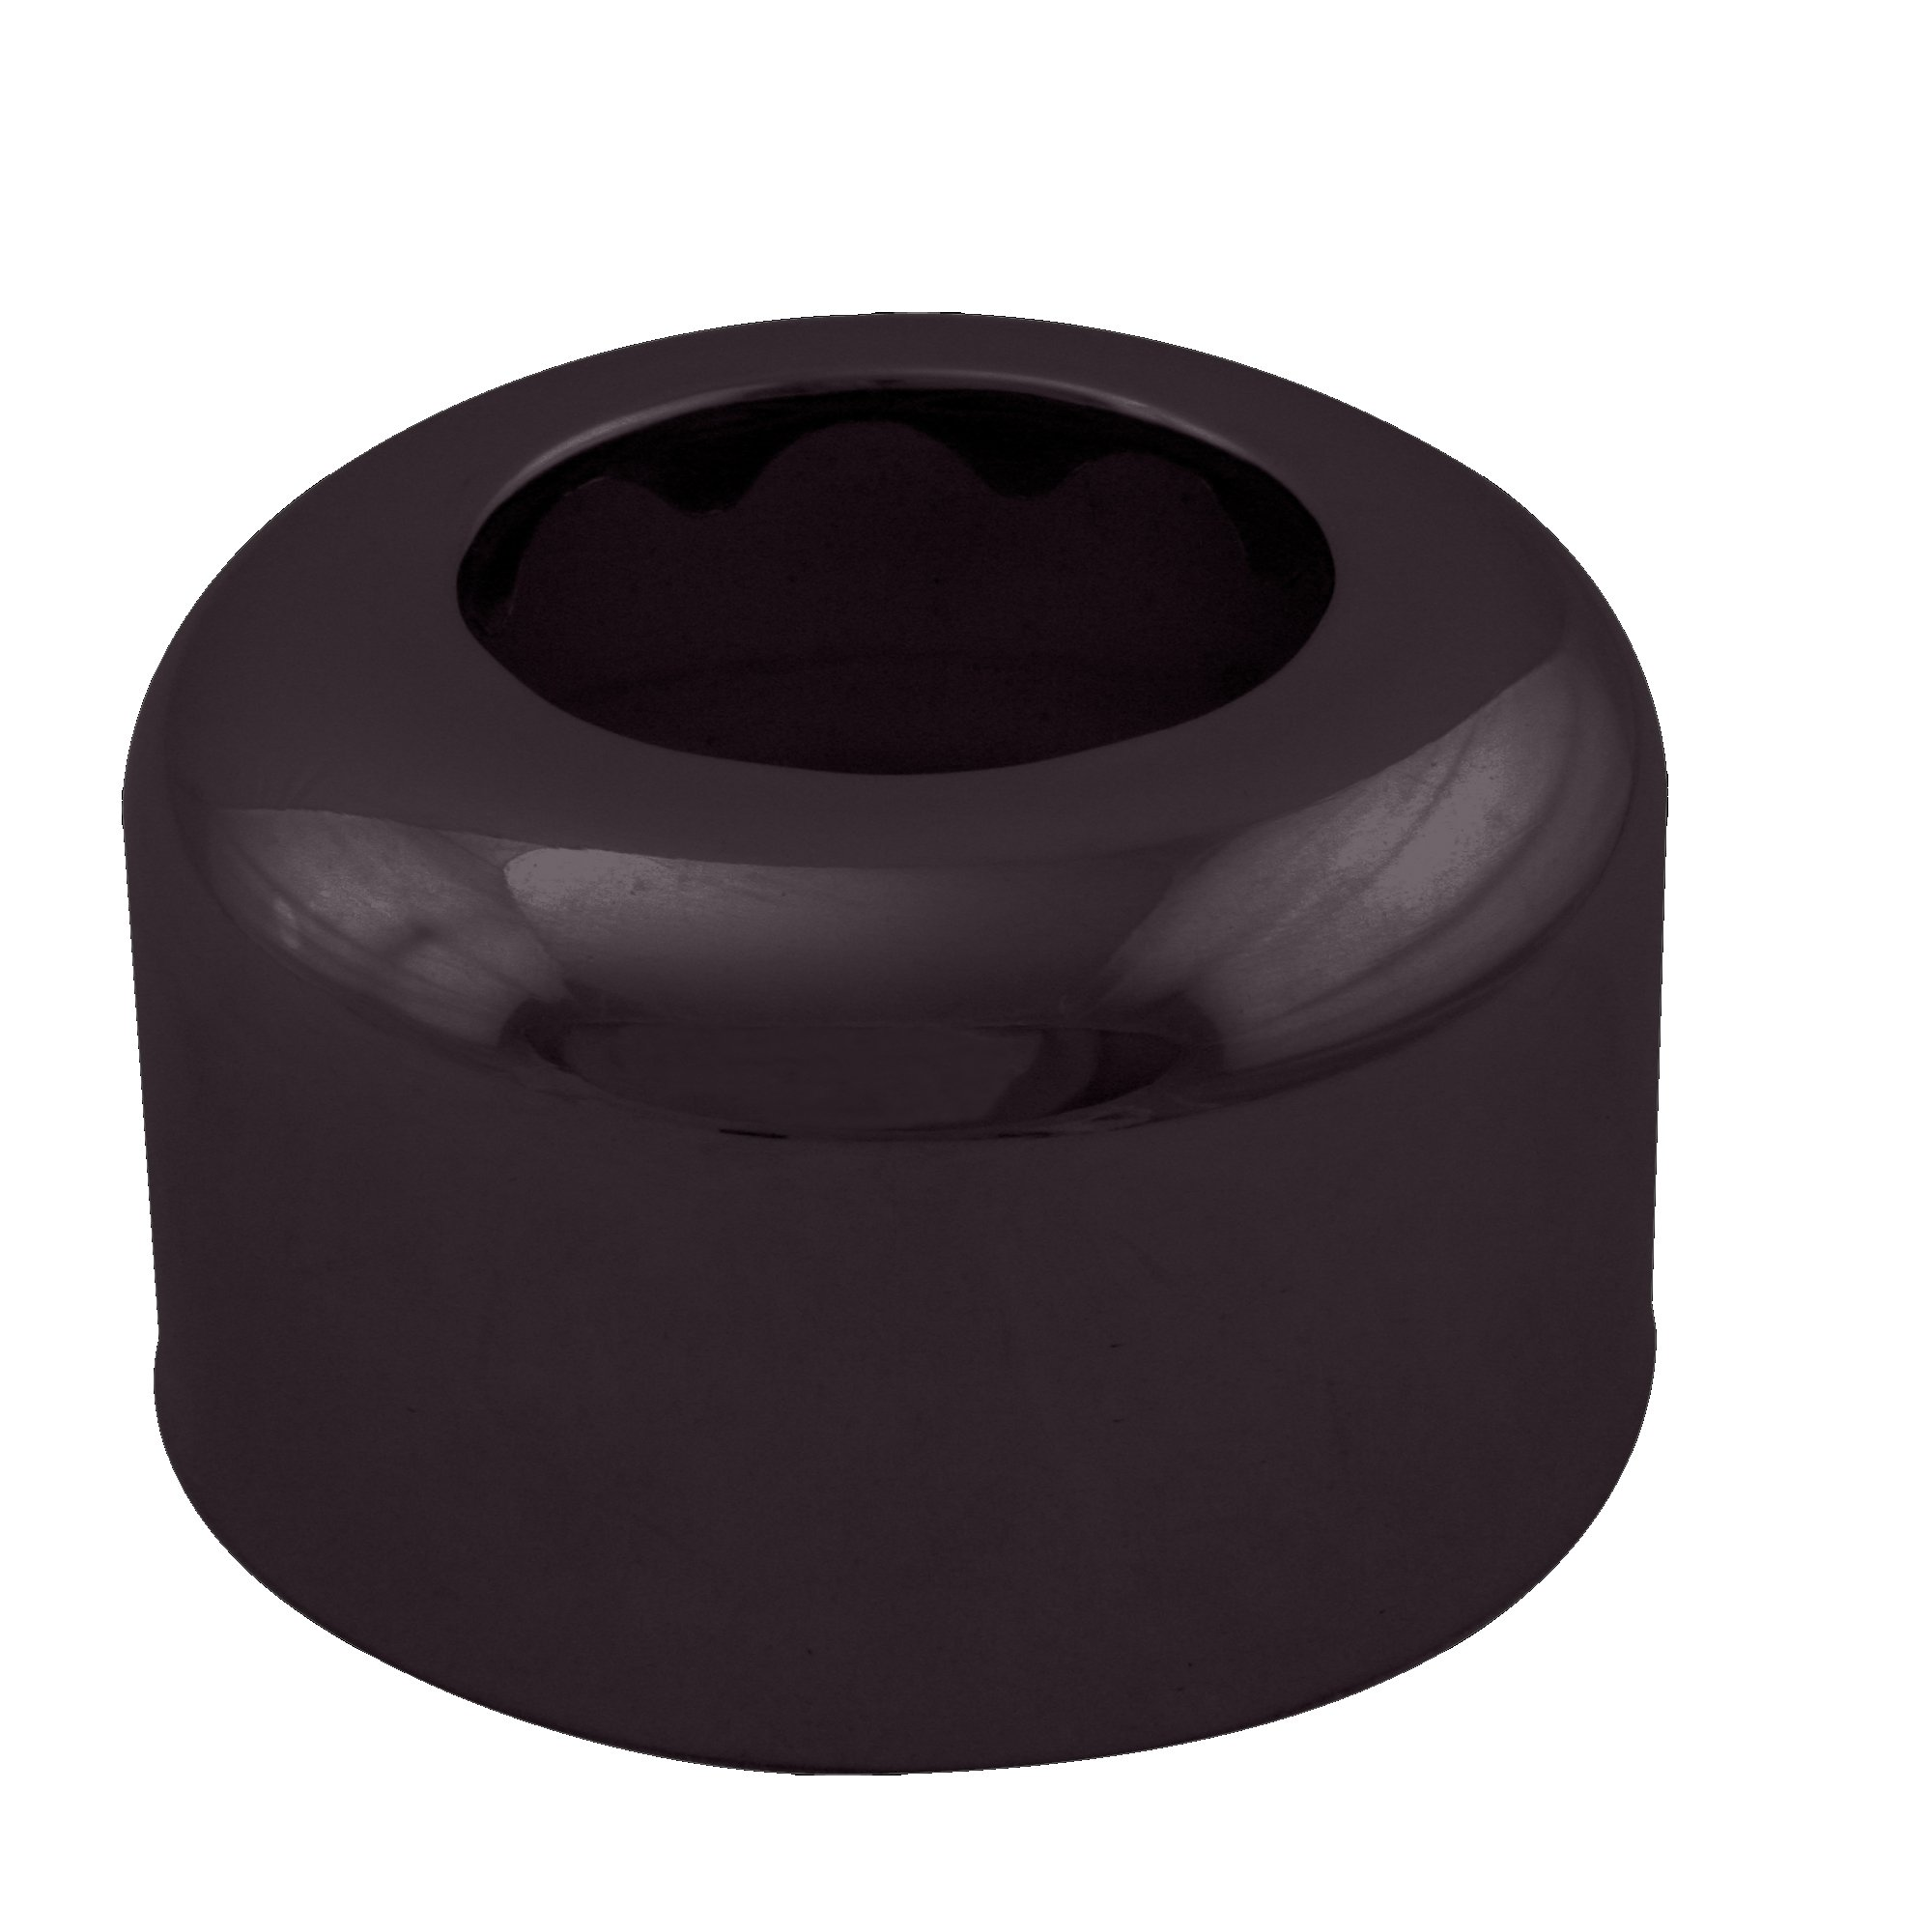 Westbrass R409-12 High Box Pattern Sure-Grip Flange, Oil Rubbed Bronze